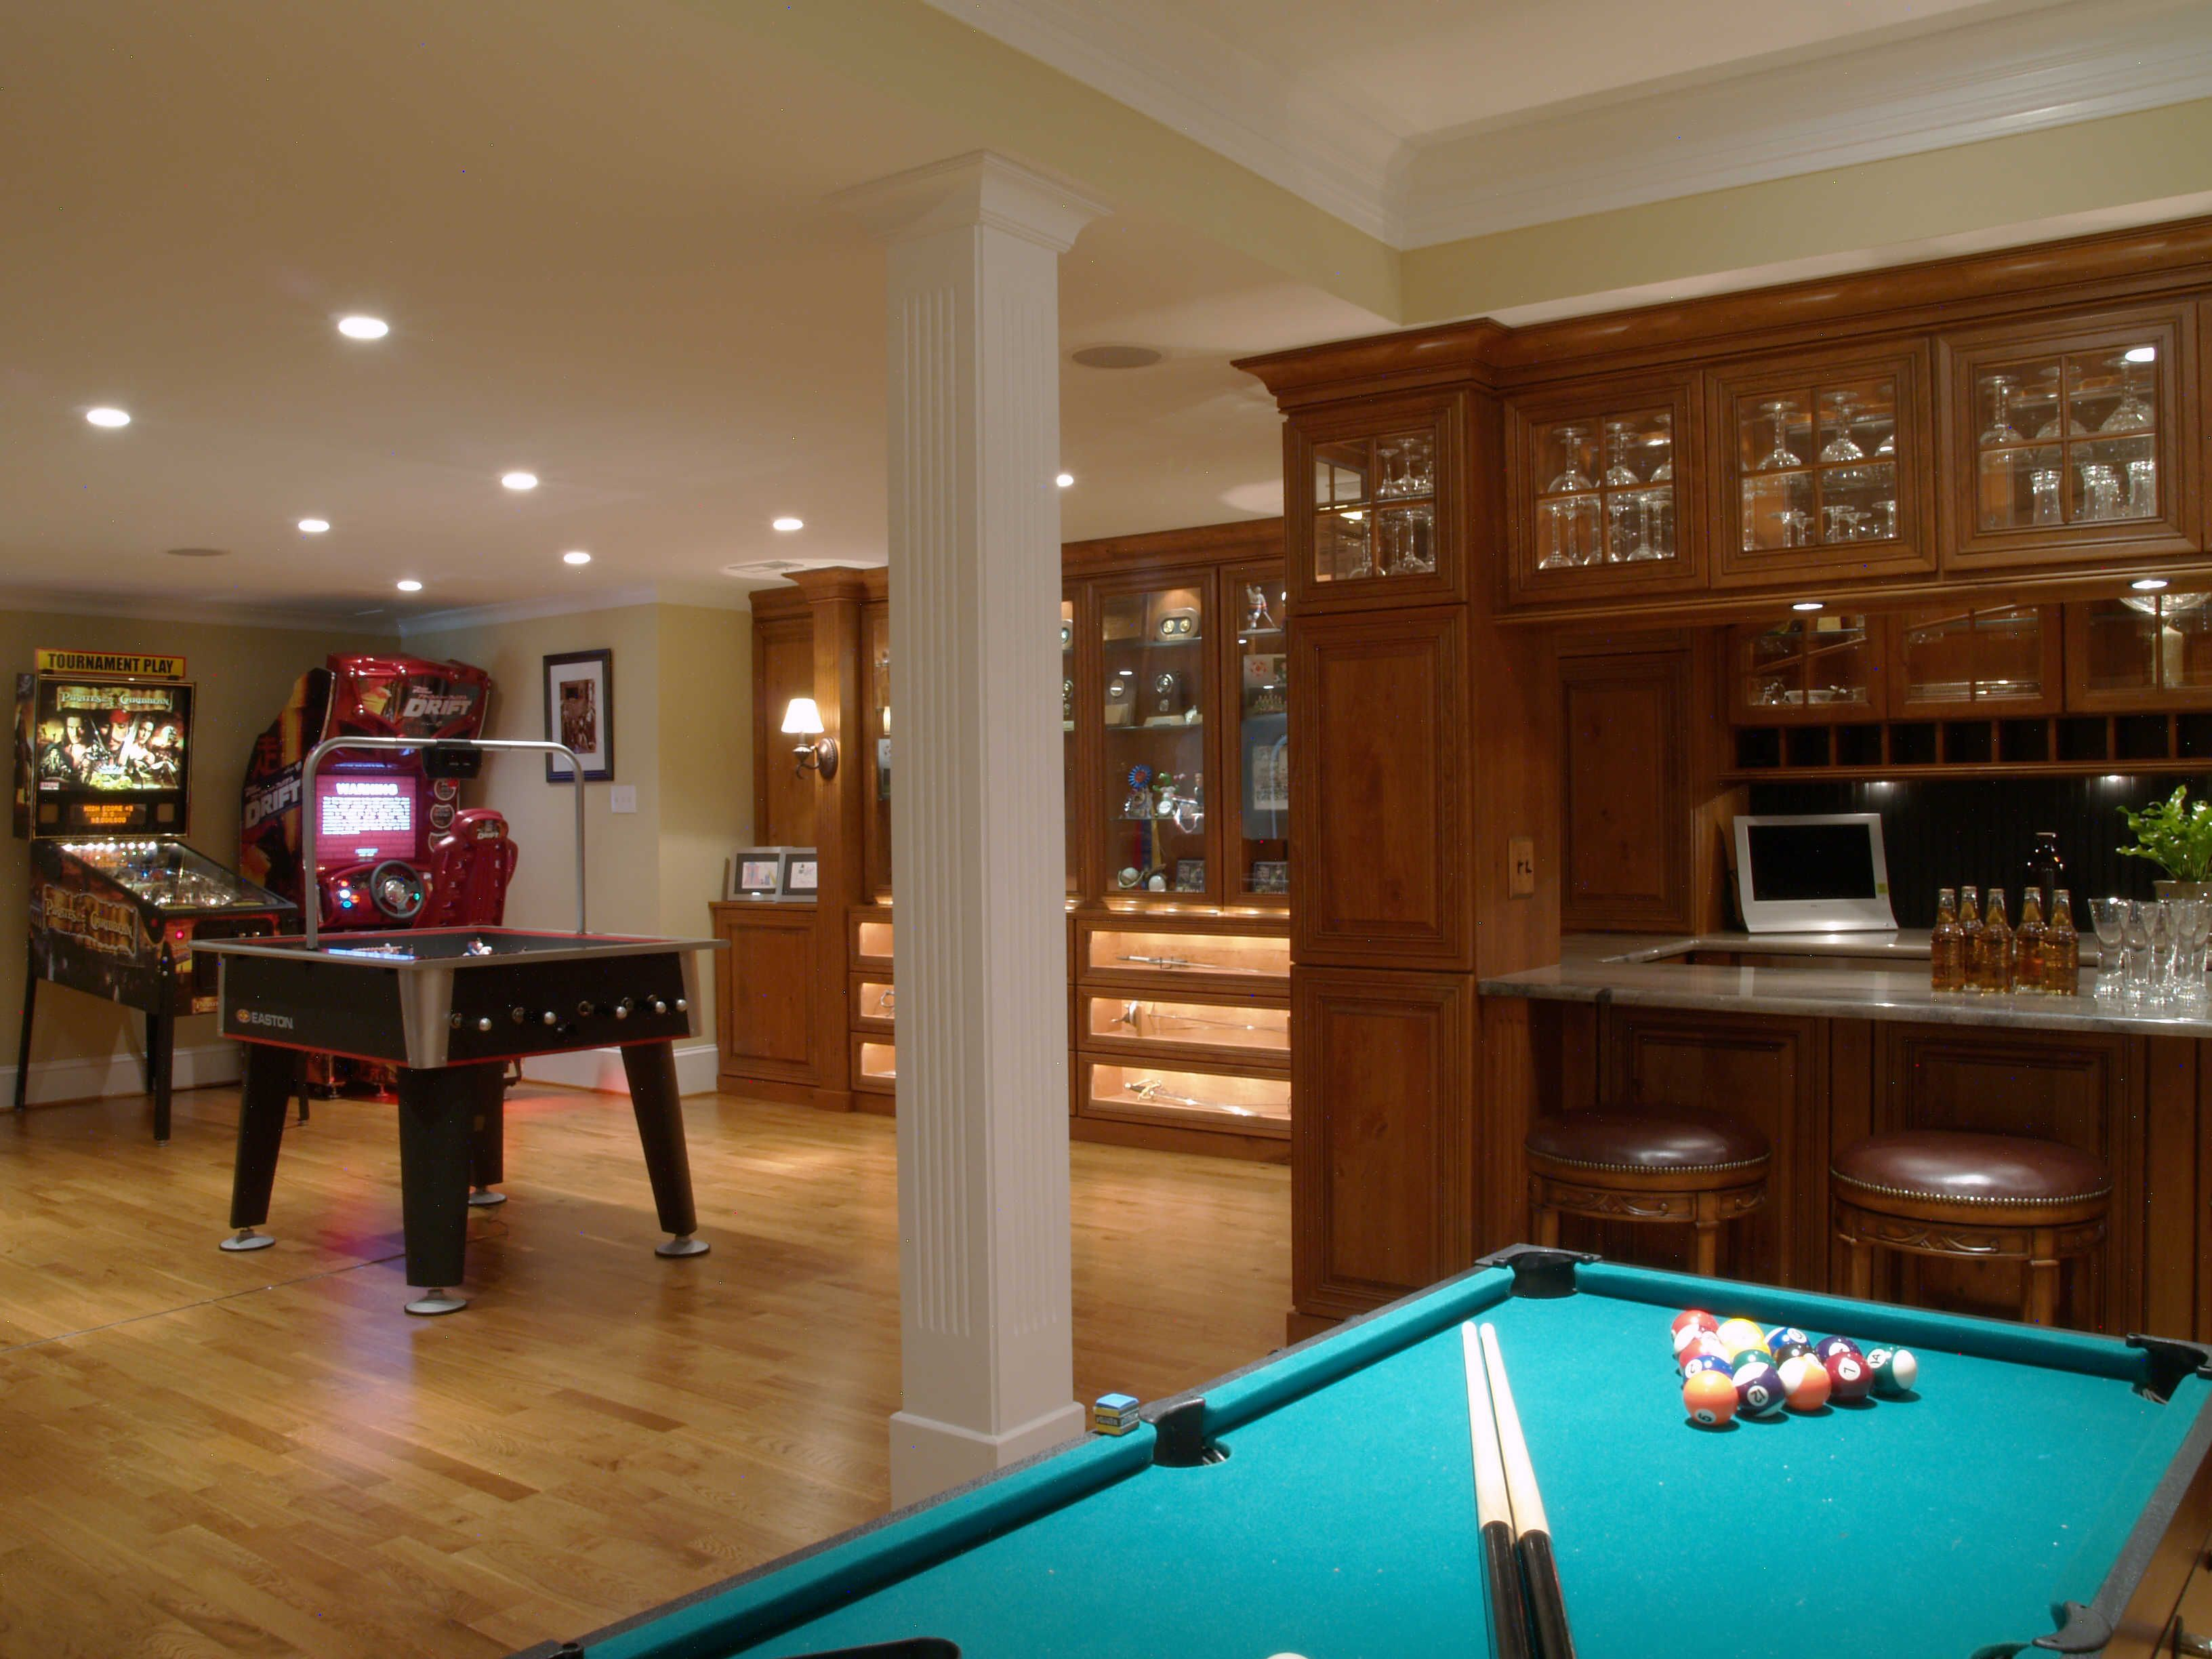 Game Room Ideas Pinterest - Moncler-Factory-Outlets.com